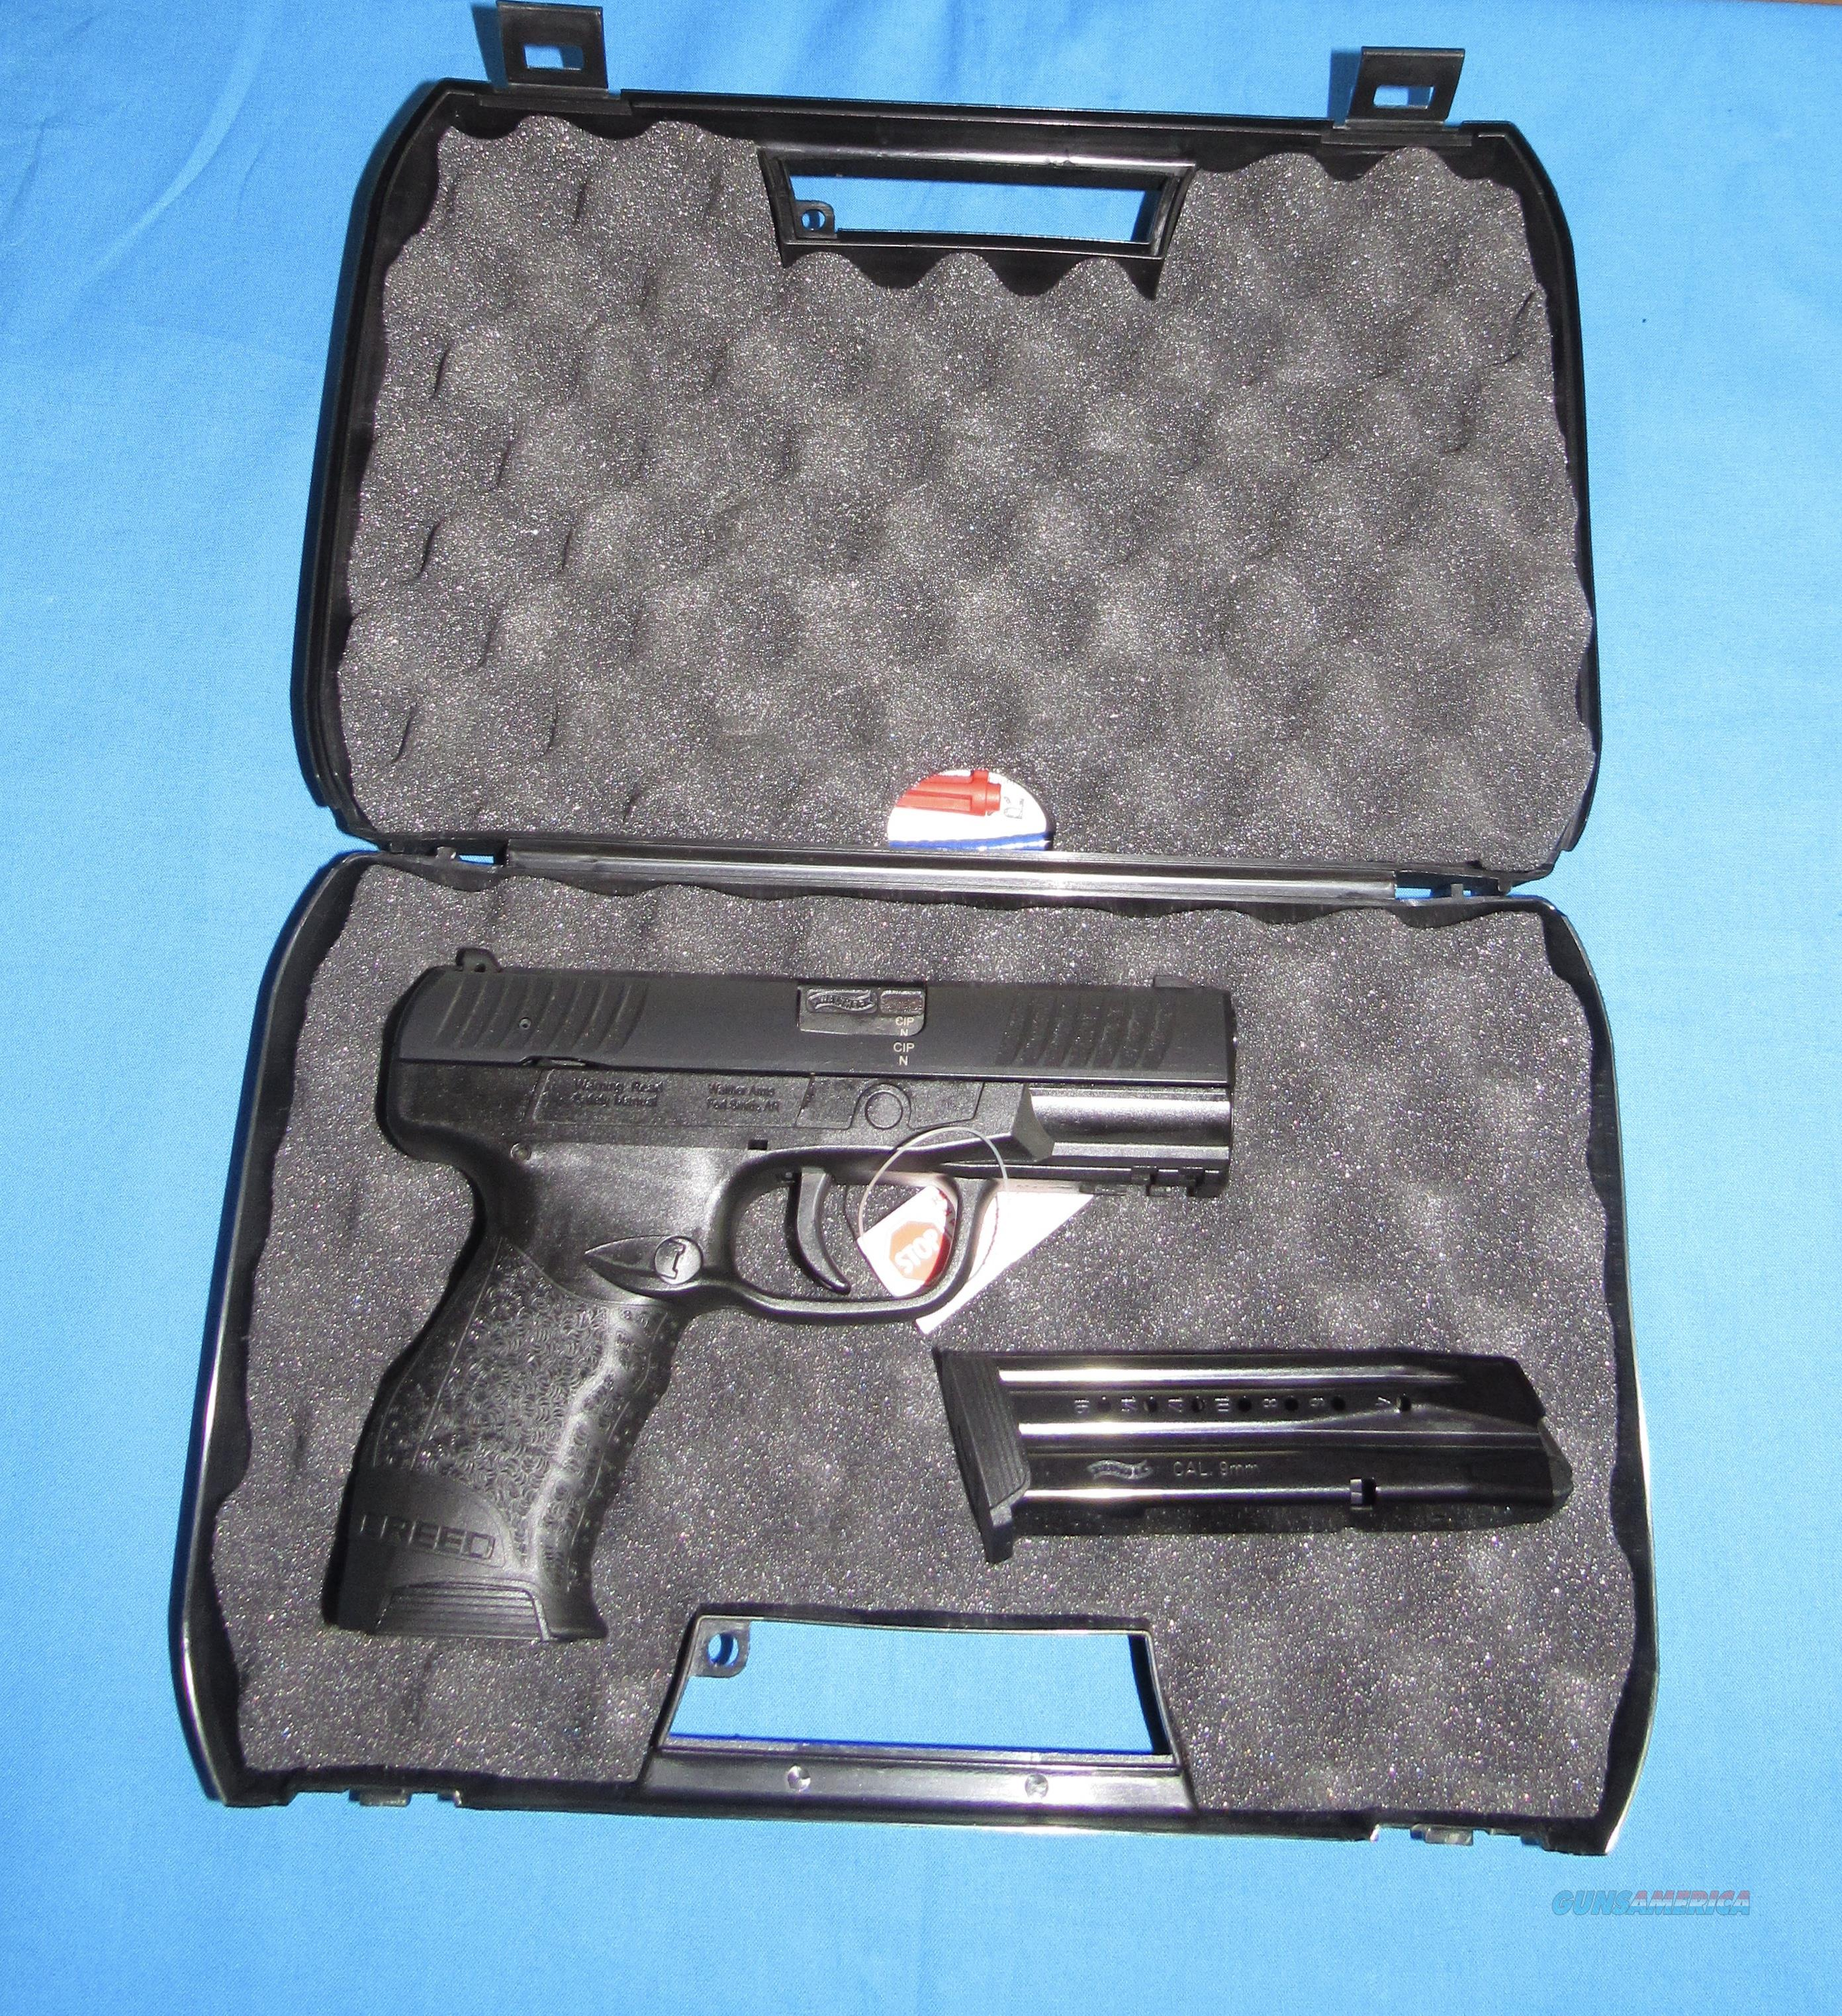 WALTHER CREED 9MM SEMI-AUTO PISTOL  Guns > Pistols > Walther Pistols > Post WWII > Creed